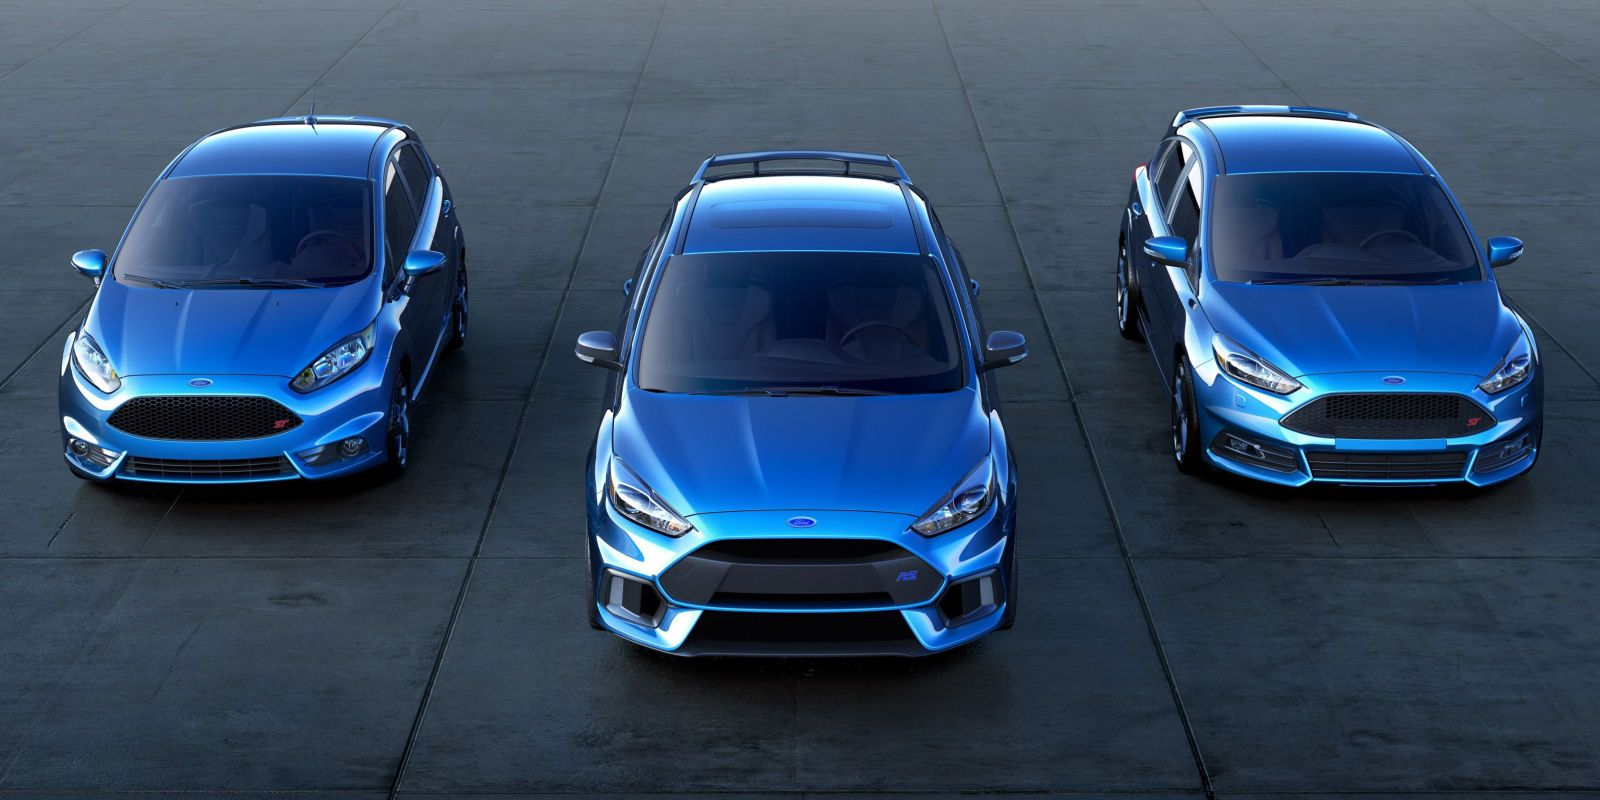 Ford Is Saving Hot Hatchbacks in America, One Focus RS at a Time